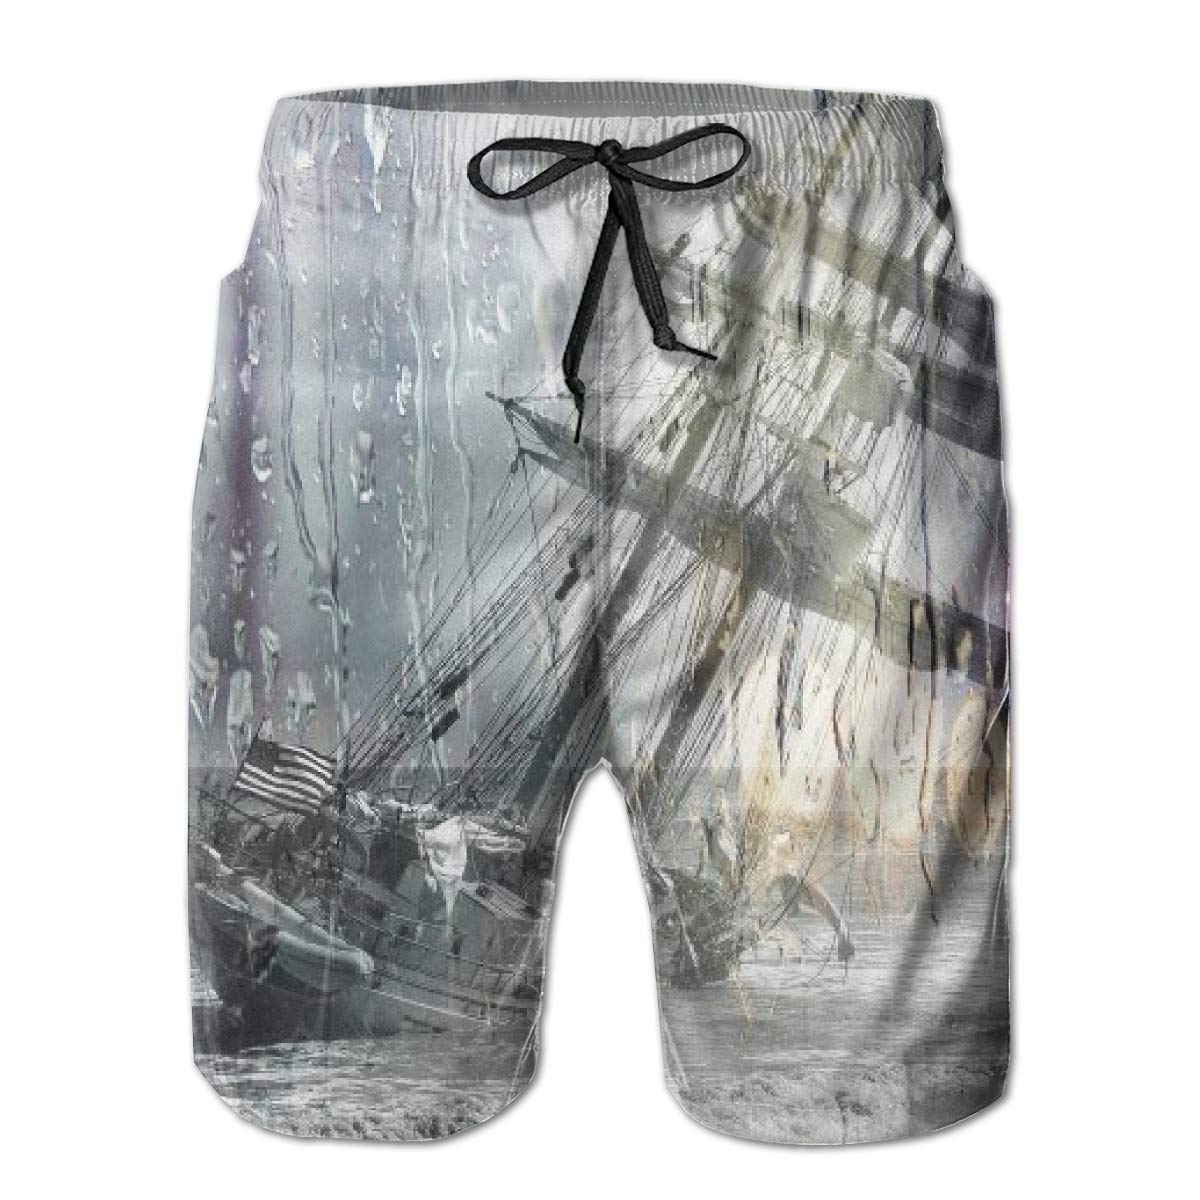 FASUWAVE Mens Swim Trunks Torrential Sailboat Quick Dry Beach Board Shorts with Mesh Lining